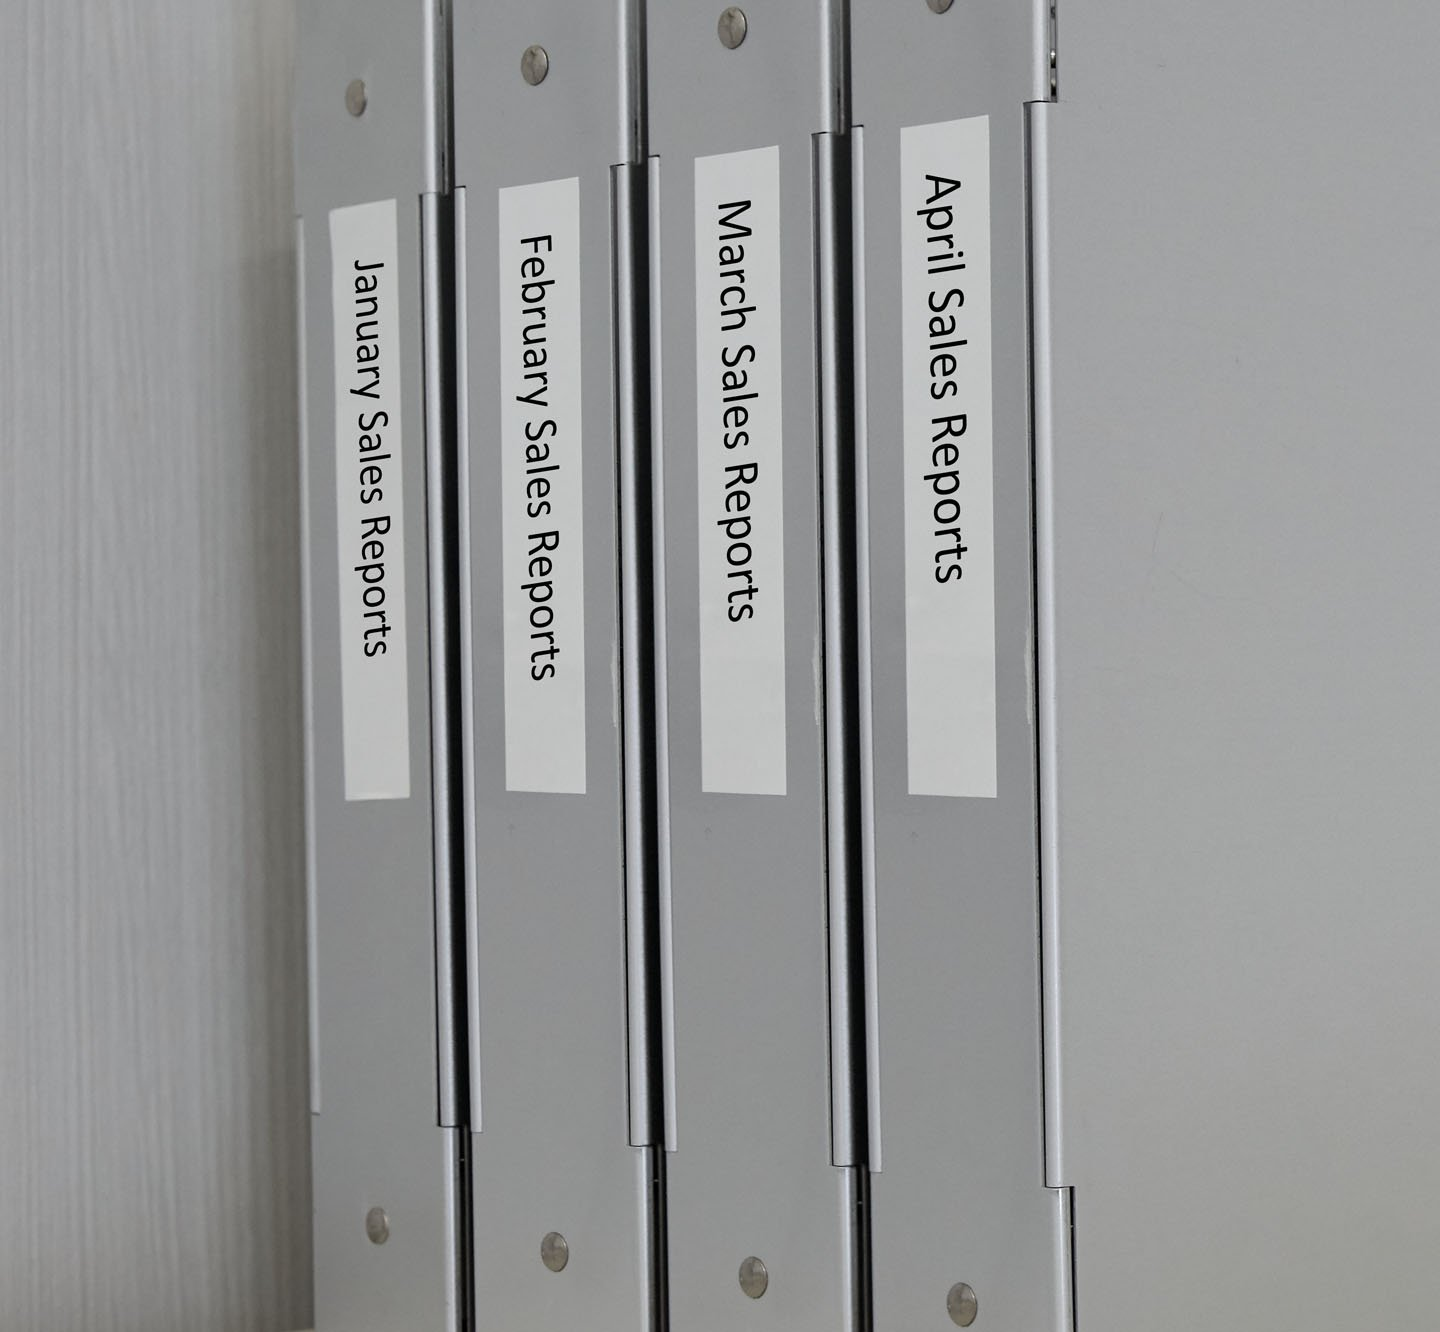 Row of labeled binders.